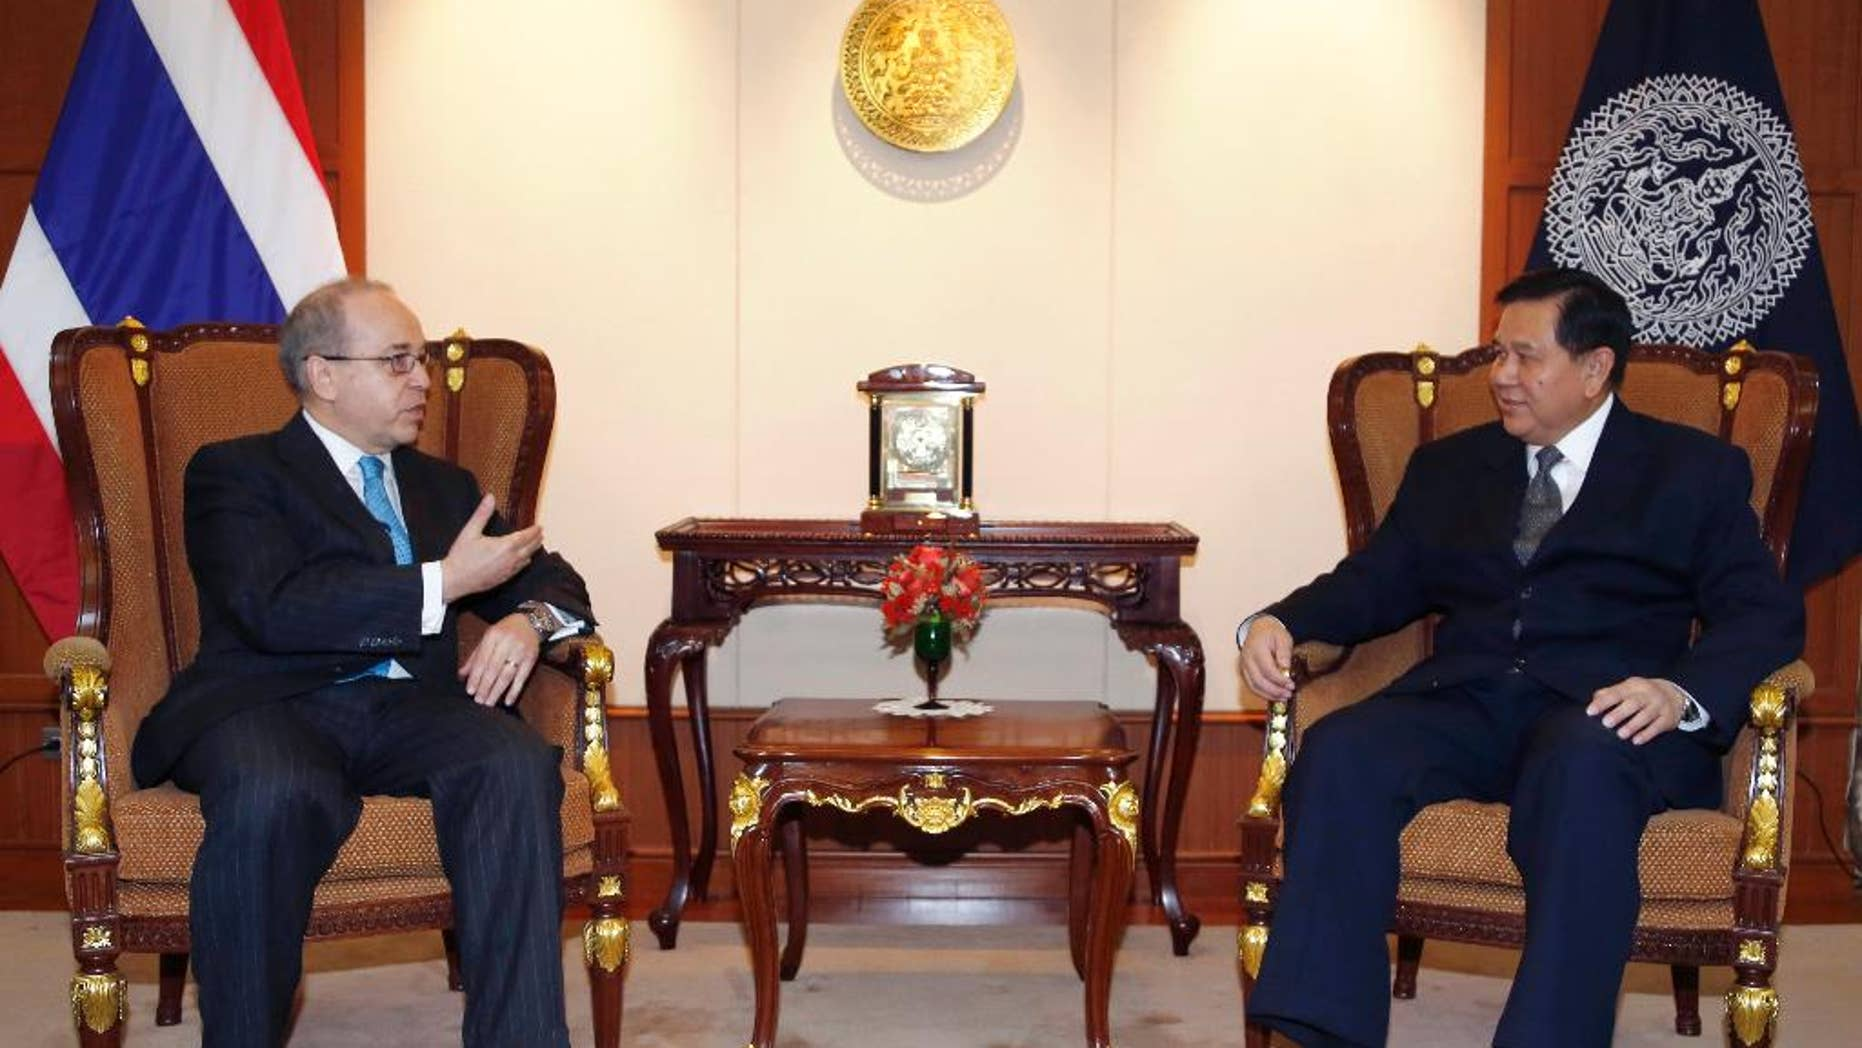 FILE - In this Monday, Jan. 26, 2015, file photo, U.S. Assistant Secretary of State for East Asian and Pacific Affairs Daniel Russel, left, talks to Thai Deputy Prime Minister and Foreign Minister Tanasak Patimapragorn during their meeting at the Foreign Ministry in Bangkok, Thailand. Russel's controversial speech to students at Chulalongkorn University on Monday has laid bare the delicate path Thailand's leaders have been trying to navigate since toppling a democratically elected government in May, both by keeping a lid on dissent at home and by maintaining good relations with foreign allies abroad. (AP Photo/Sakchai Lalit, File)